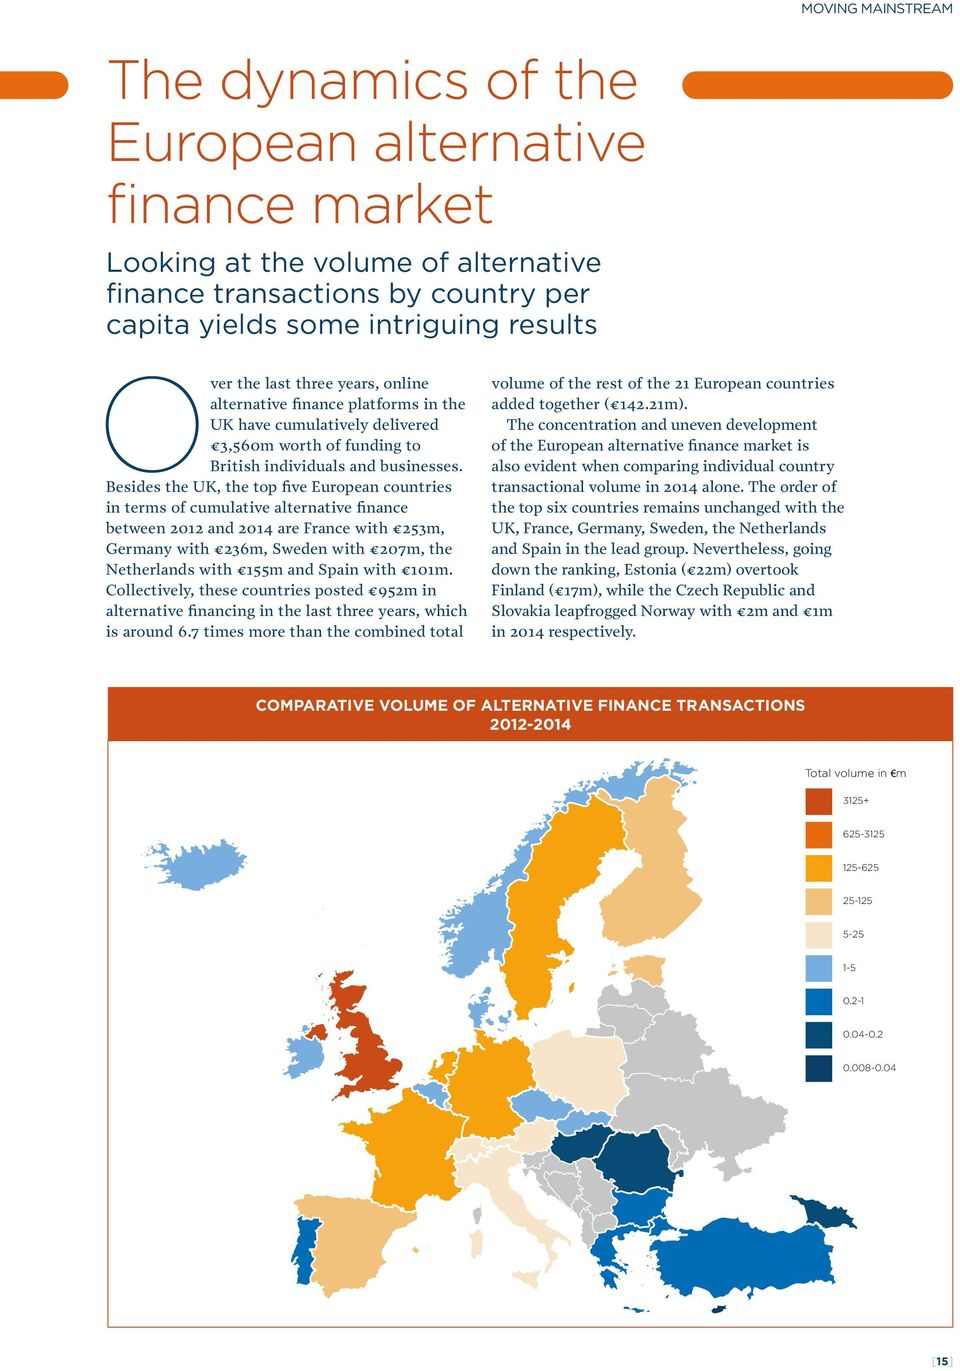 Besides the UK, the top five European countries in terms of cumulative alternative finance between 2012 and 2014 are France with 253m, Germany with 236m, Sweden with 207m, the Netherlands with 155m